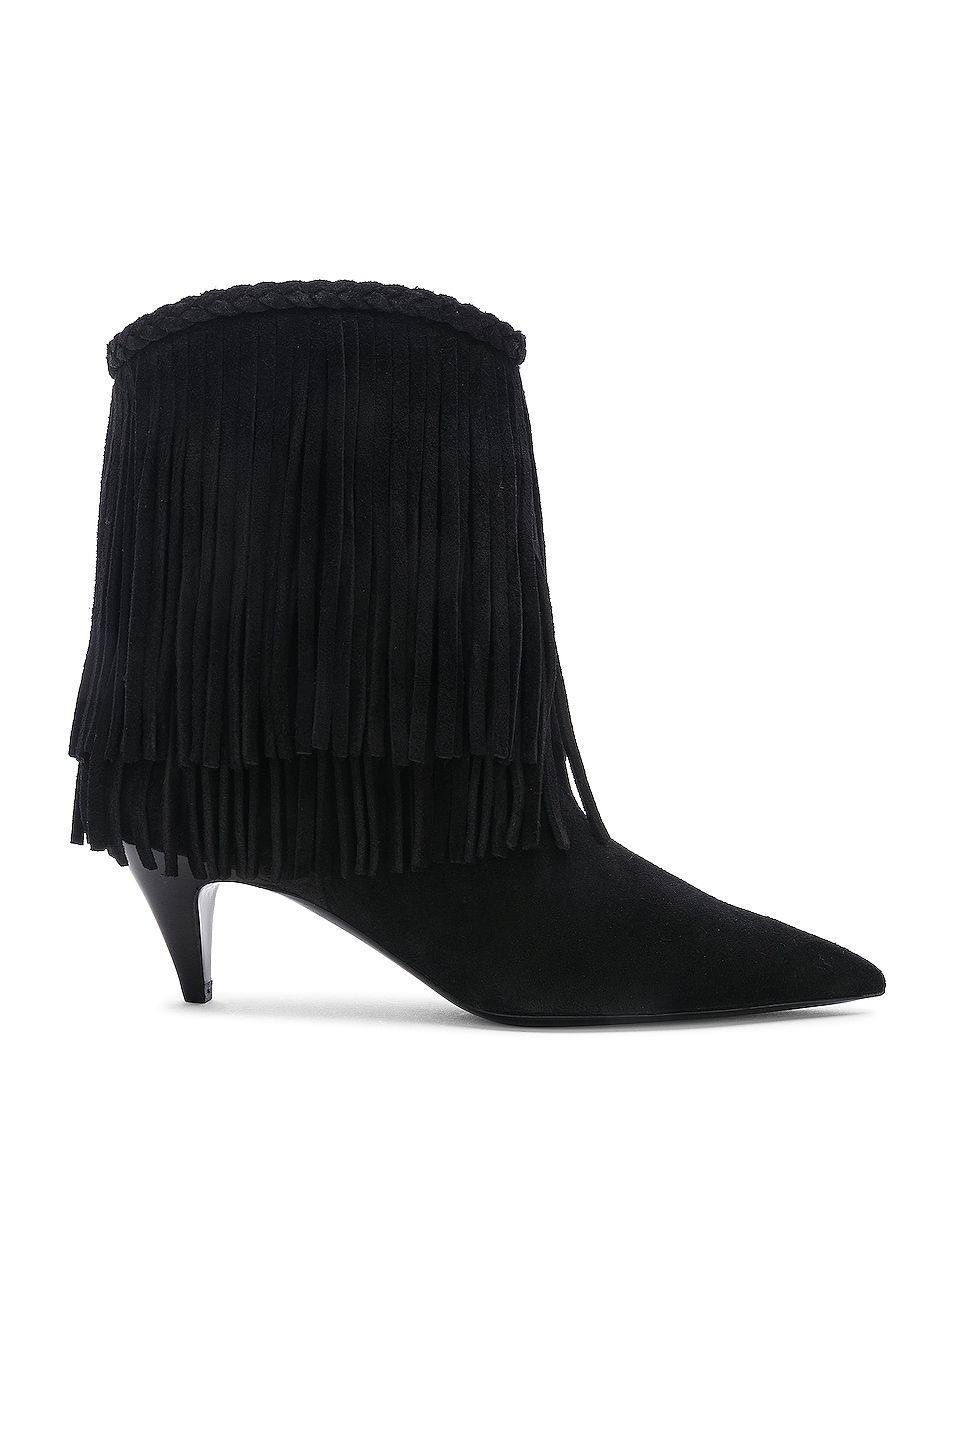 Image 1 of Saint Laurent Charlotte Fringe Booties in Black